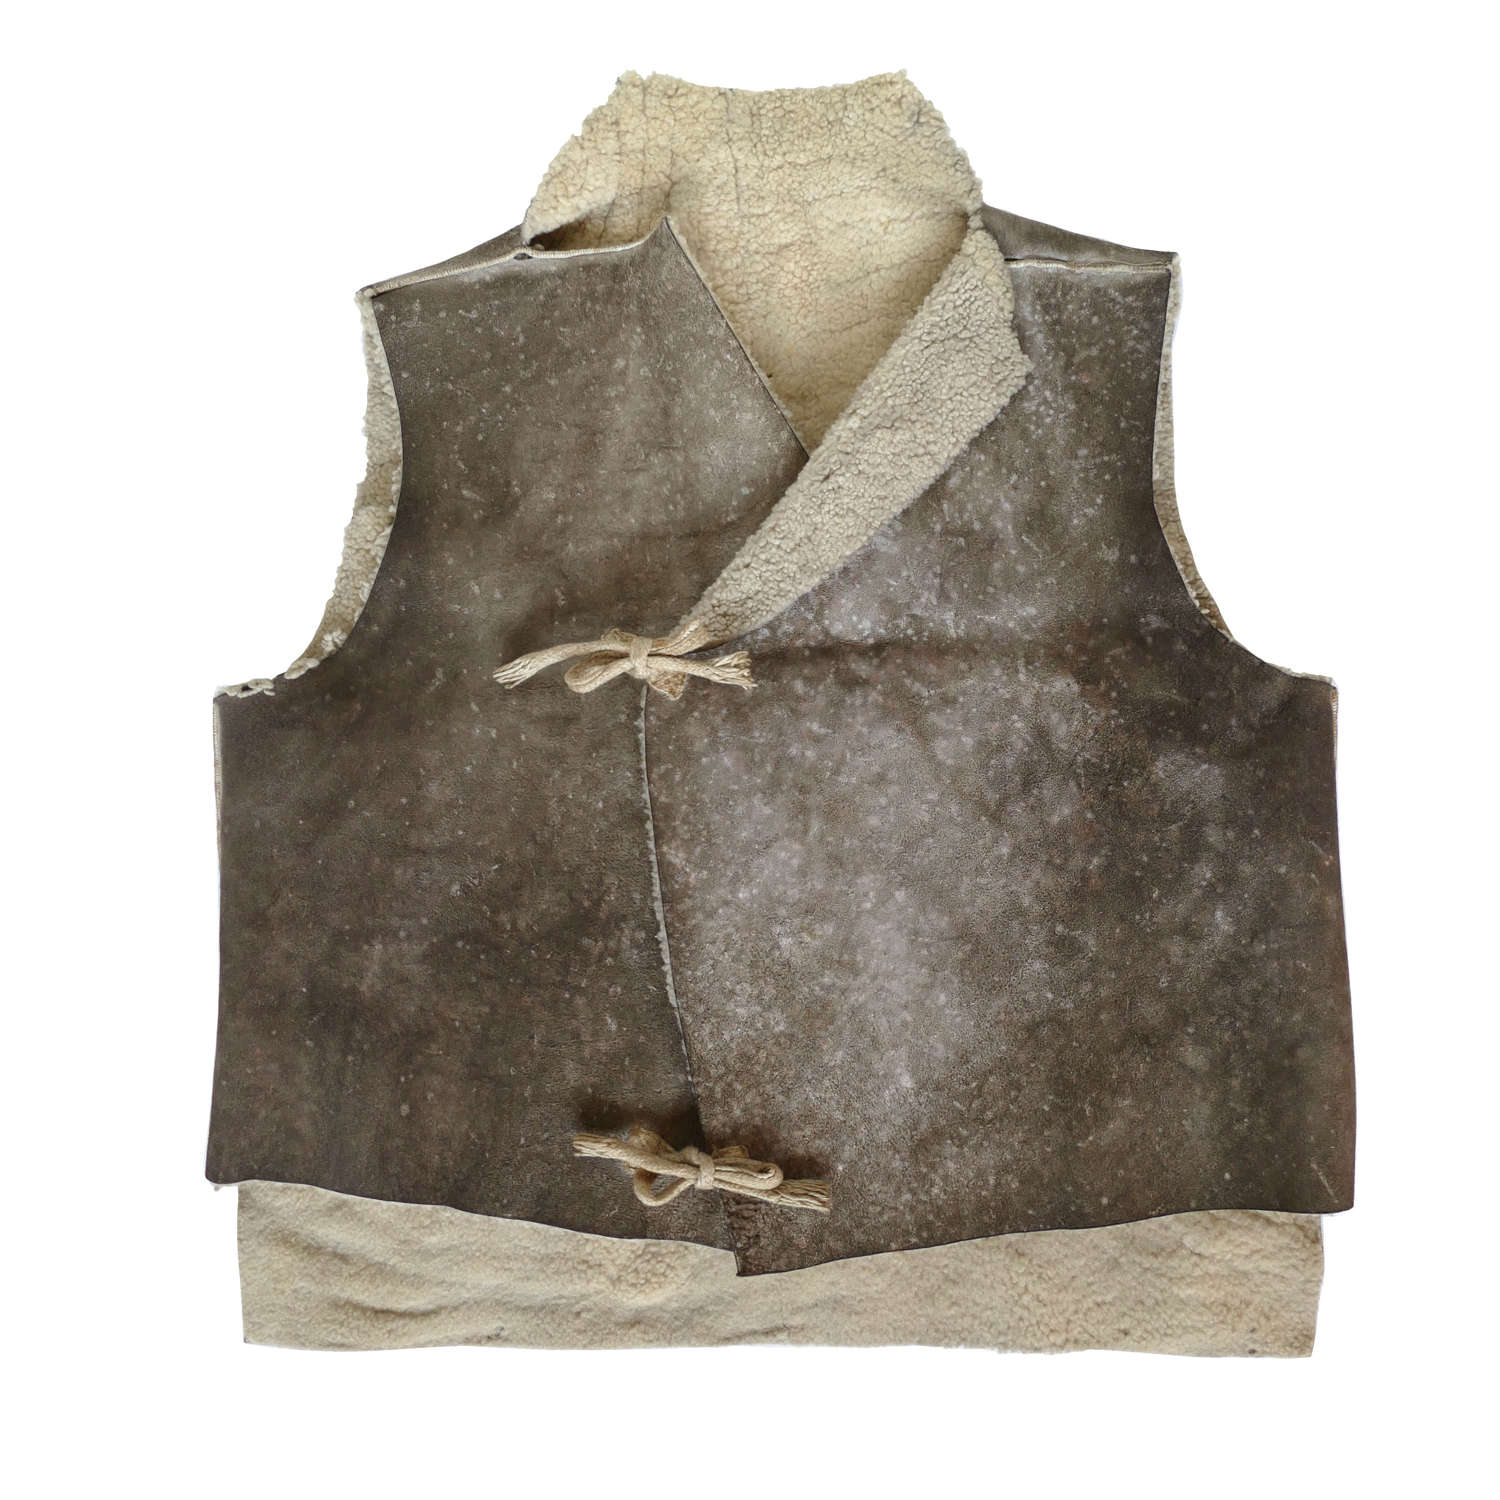 RAAF shearling waistcoat with artwork, history